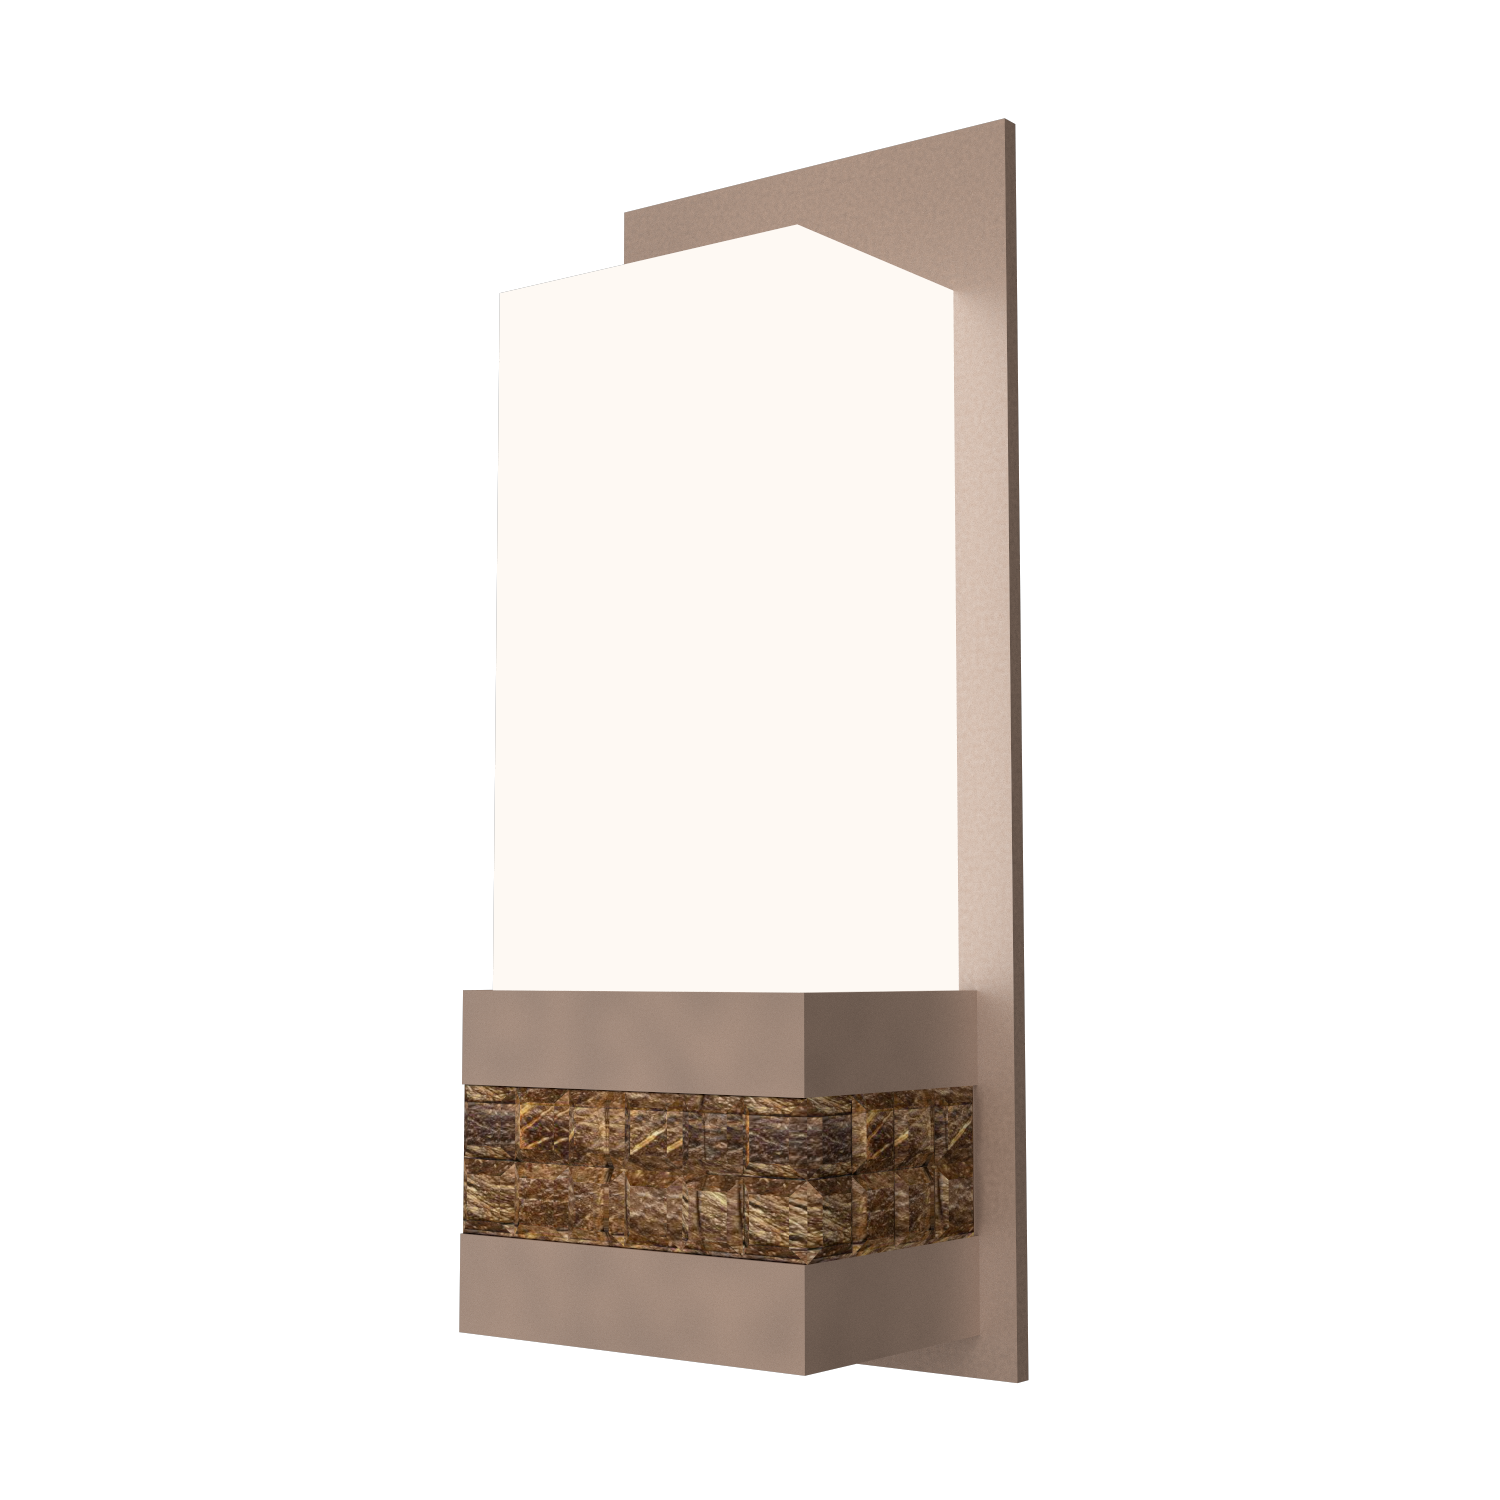 Wall Lamp Accord Pastilhada 441 - Pastilhada Line Accord Lighting | 33. Bronze